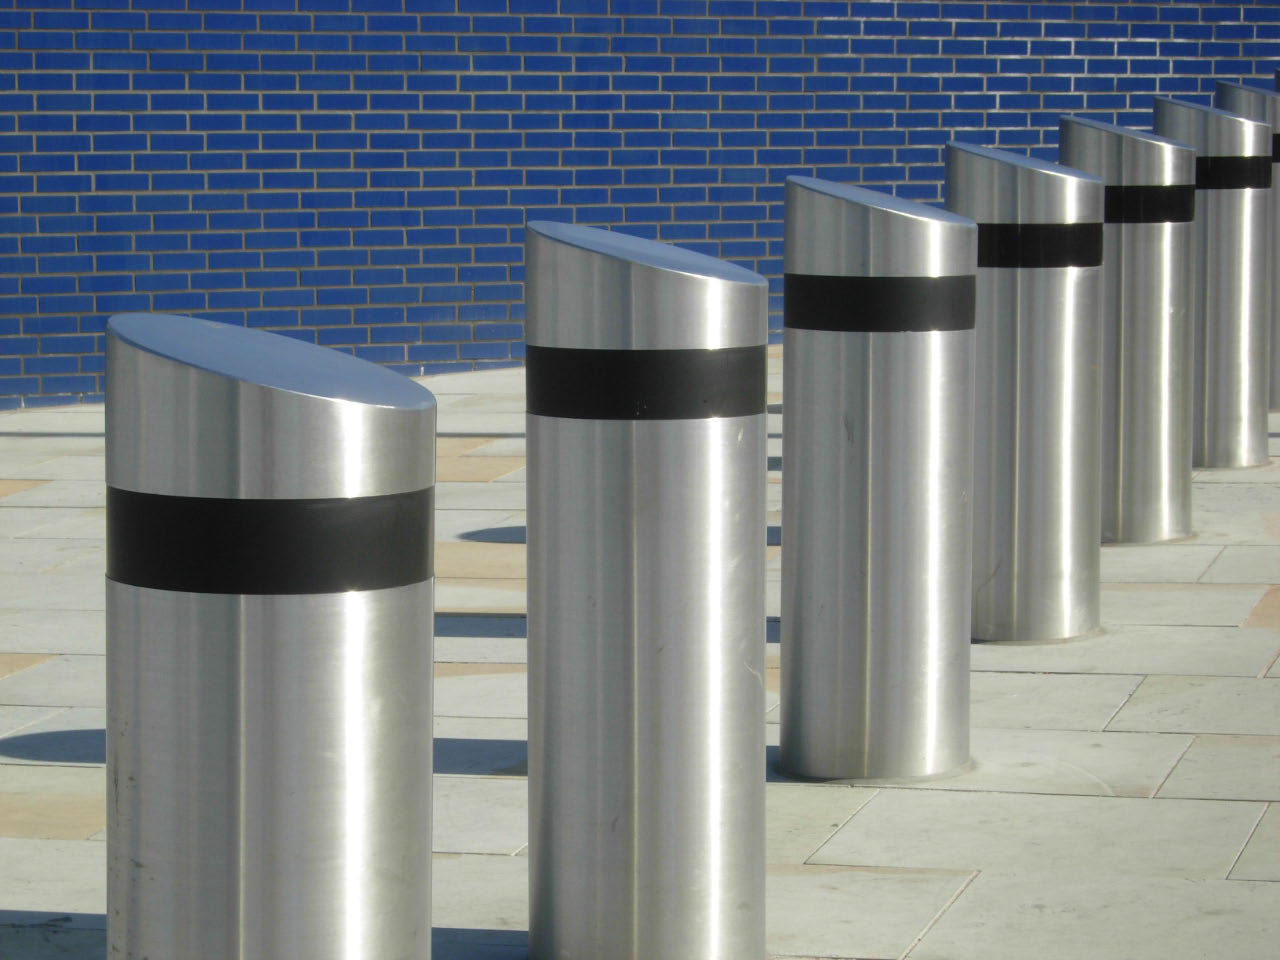 Neatly installed stainless steel city road bollards by Brooklynz metal works Singapore